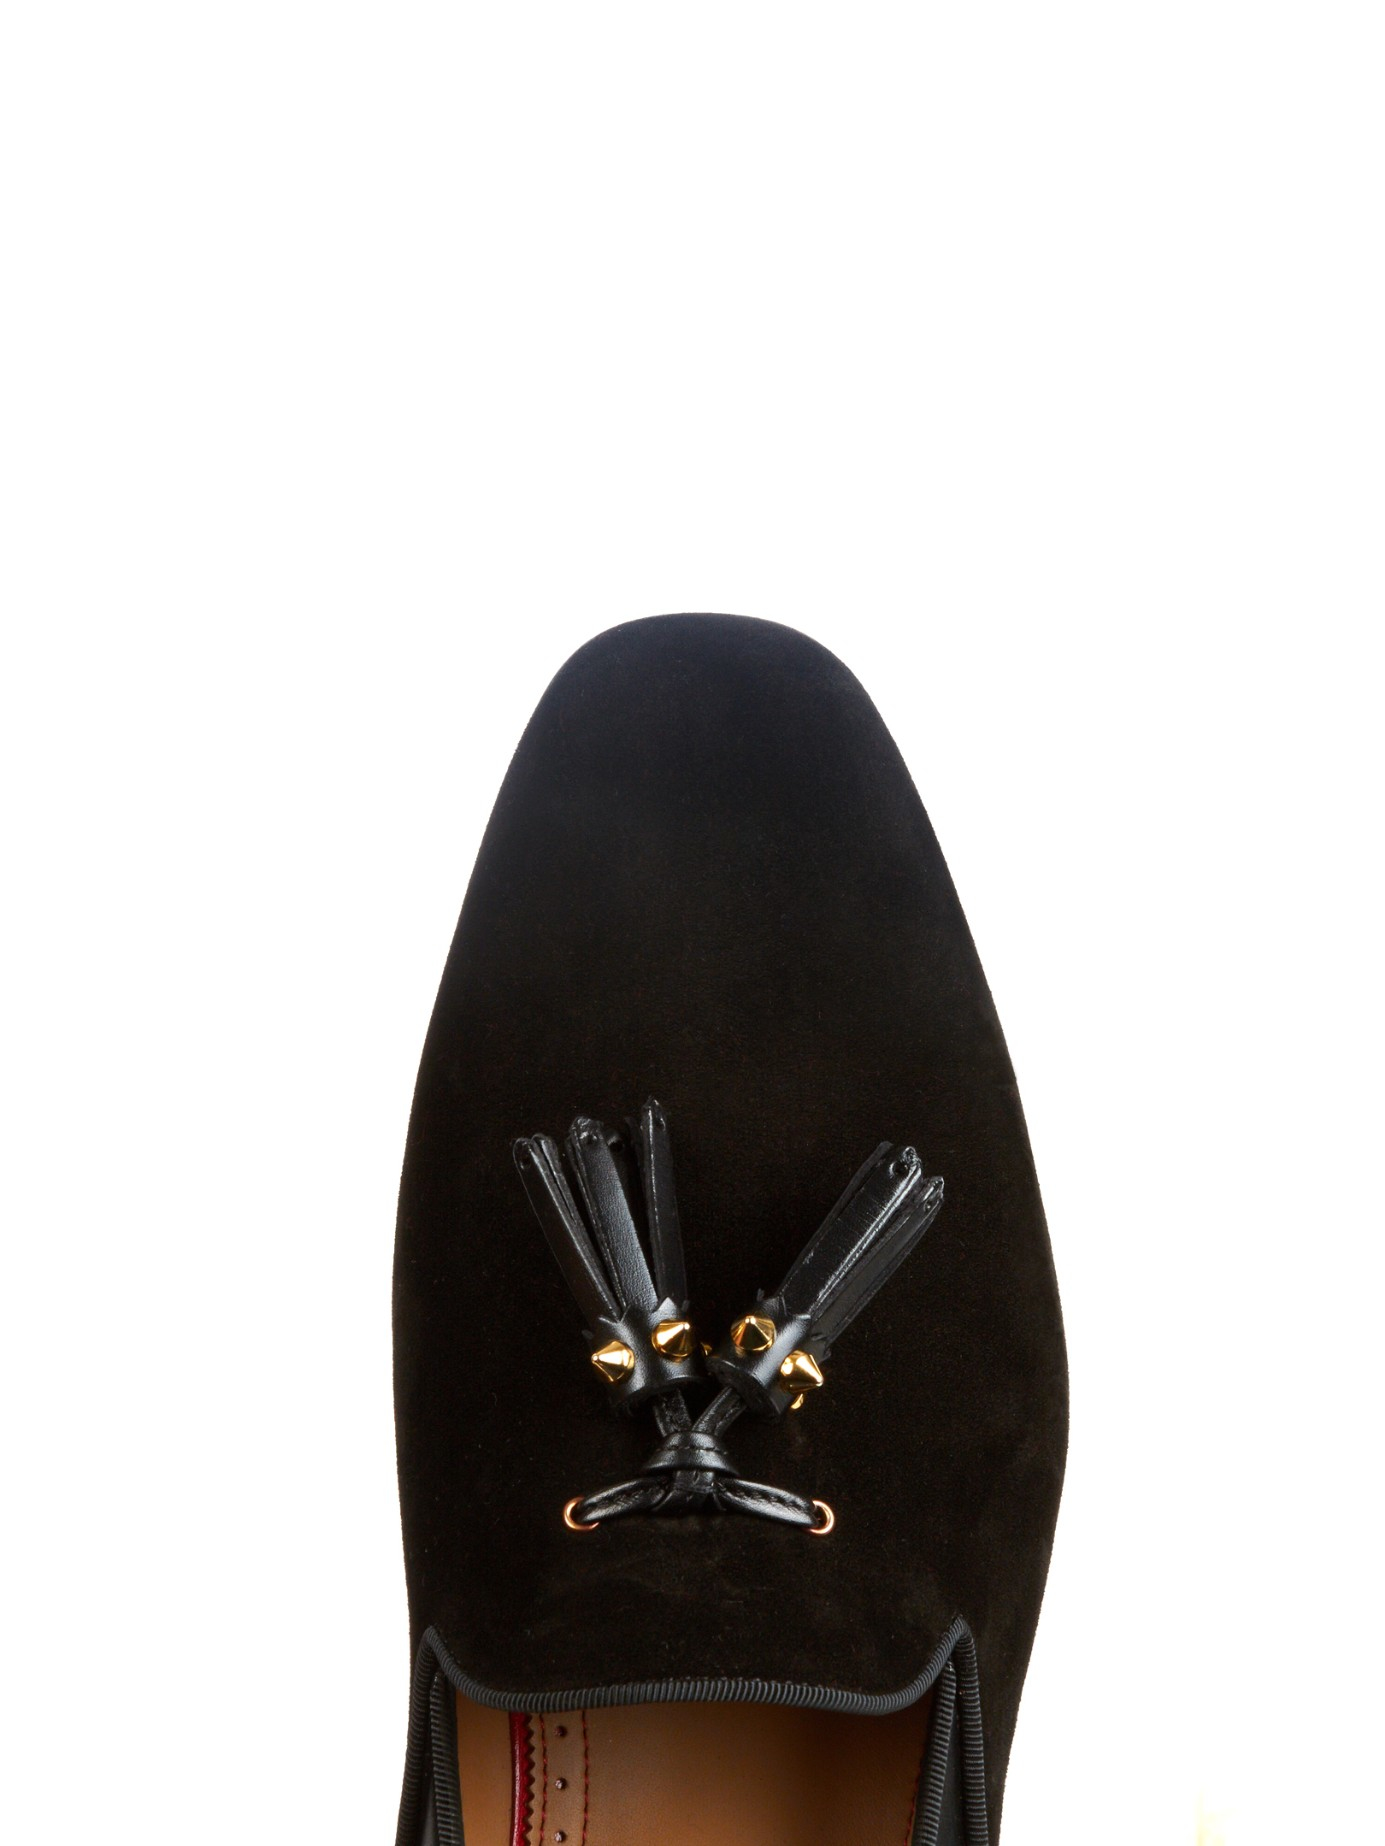 c474c0d45a2 Lyst - Christian Louboutin Tassilo Studded Loafers in Black for Men